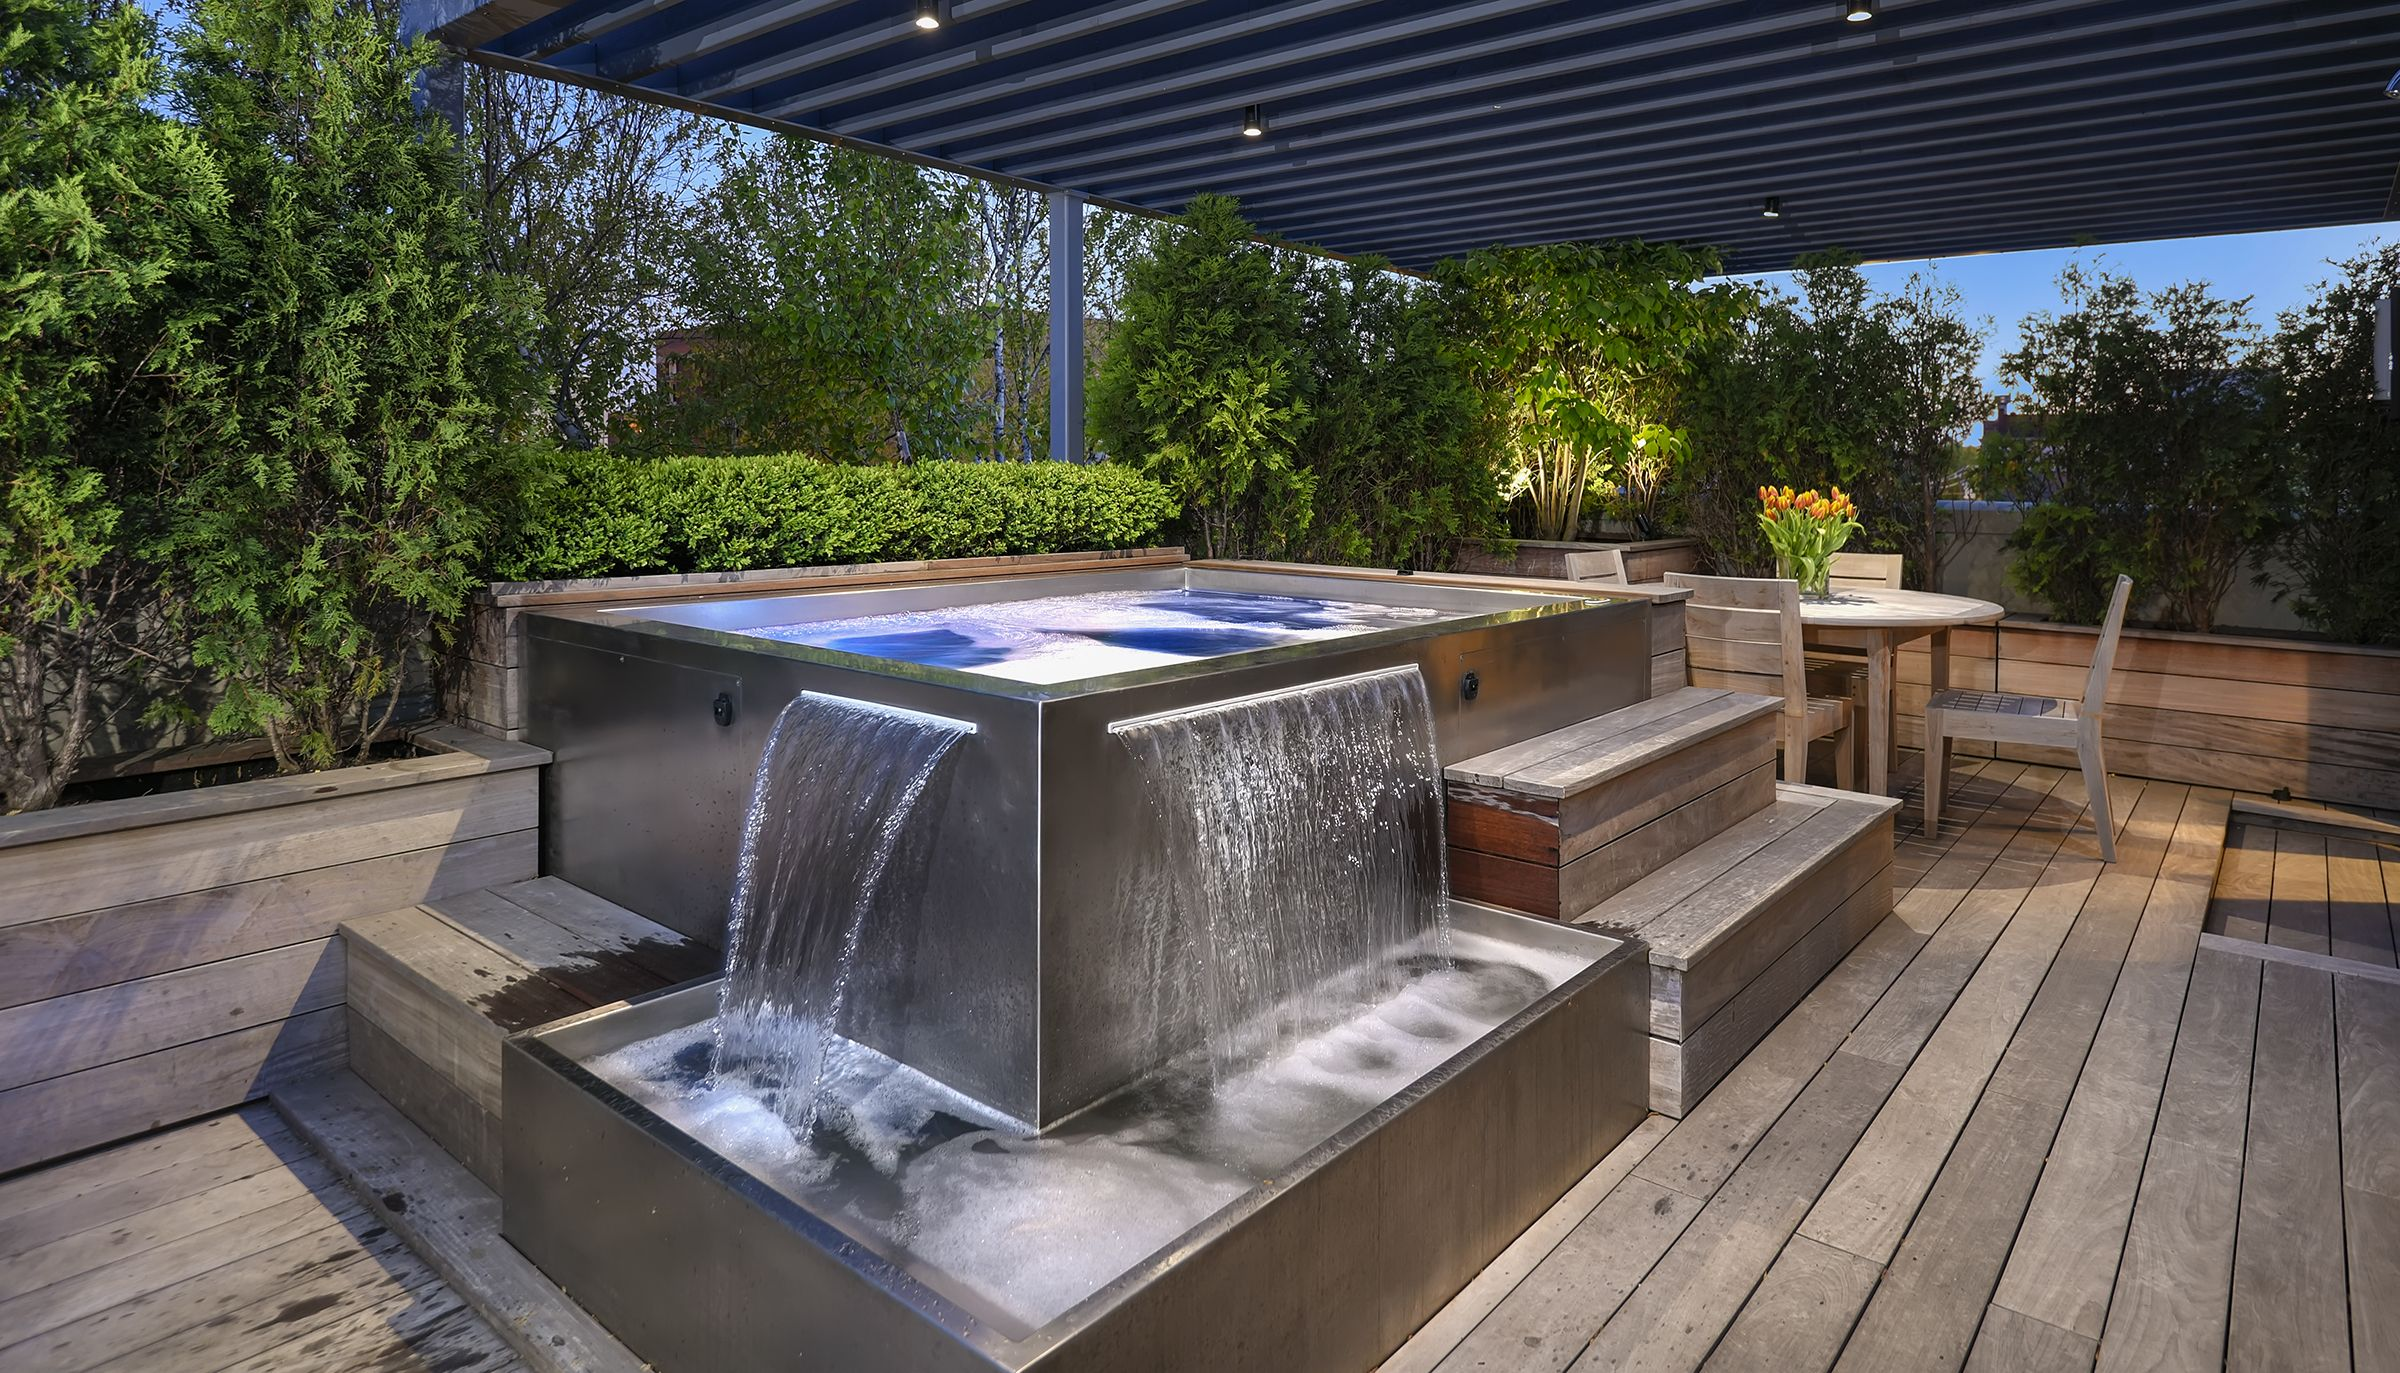 Stainless Steel Spa With Two Water Fall Features With